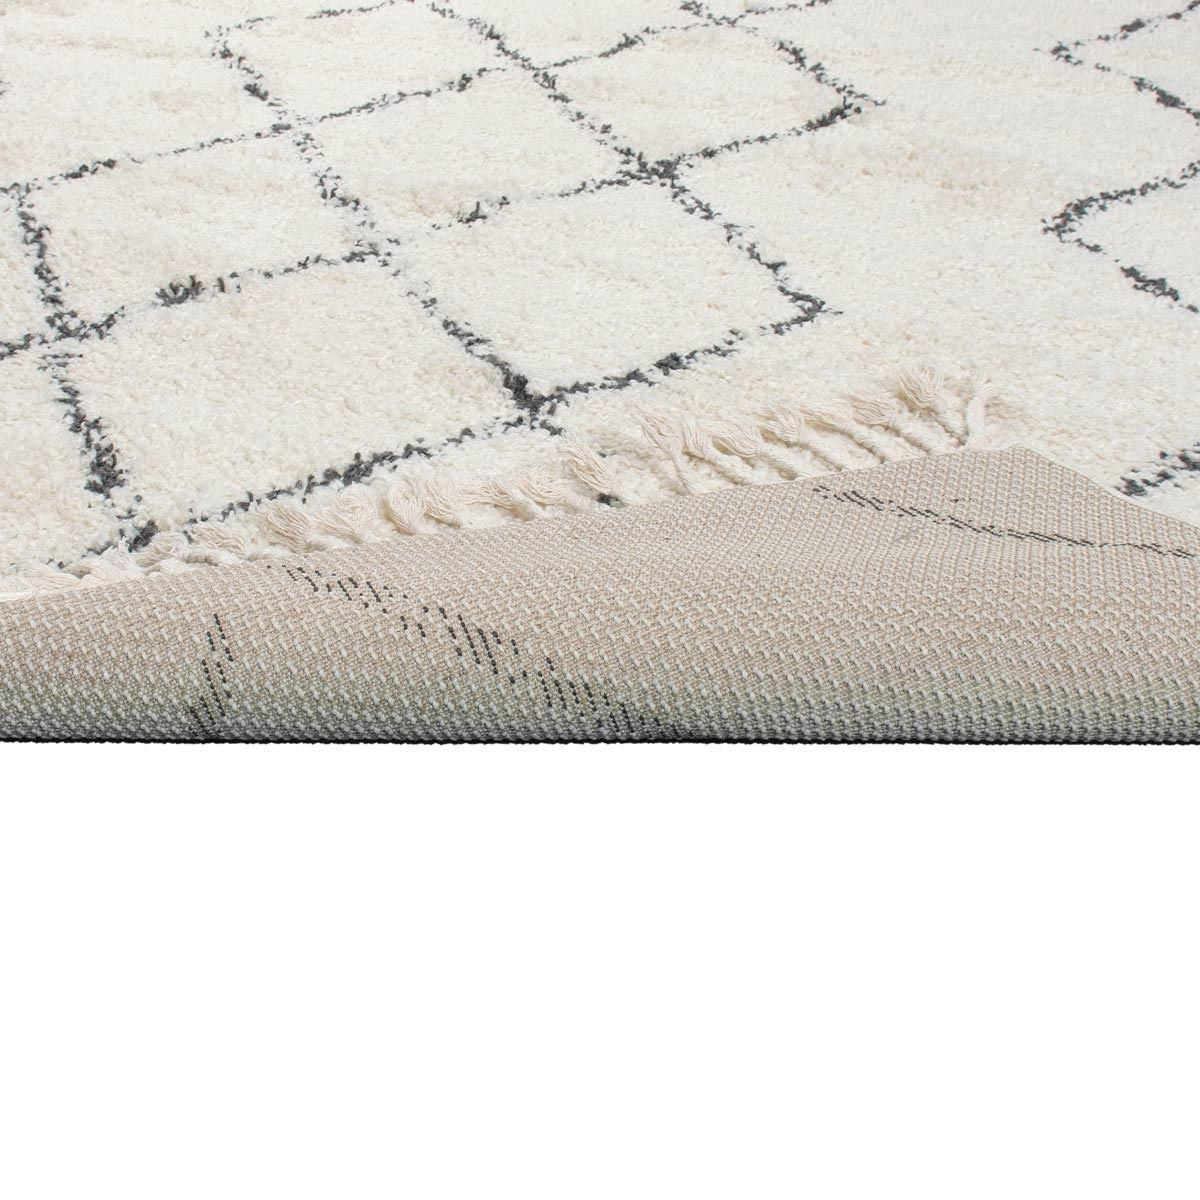 Shaggy Marrakech Rug 03 Cream/Black 4